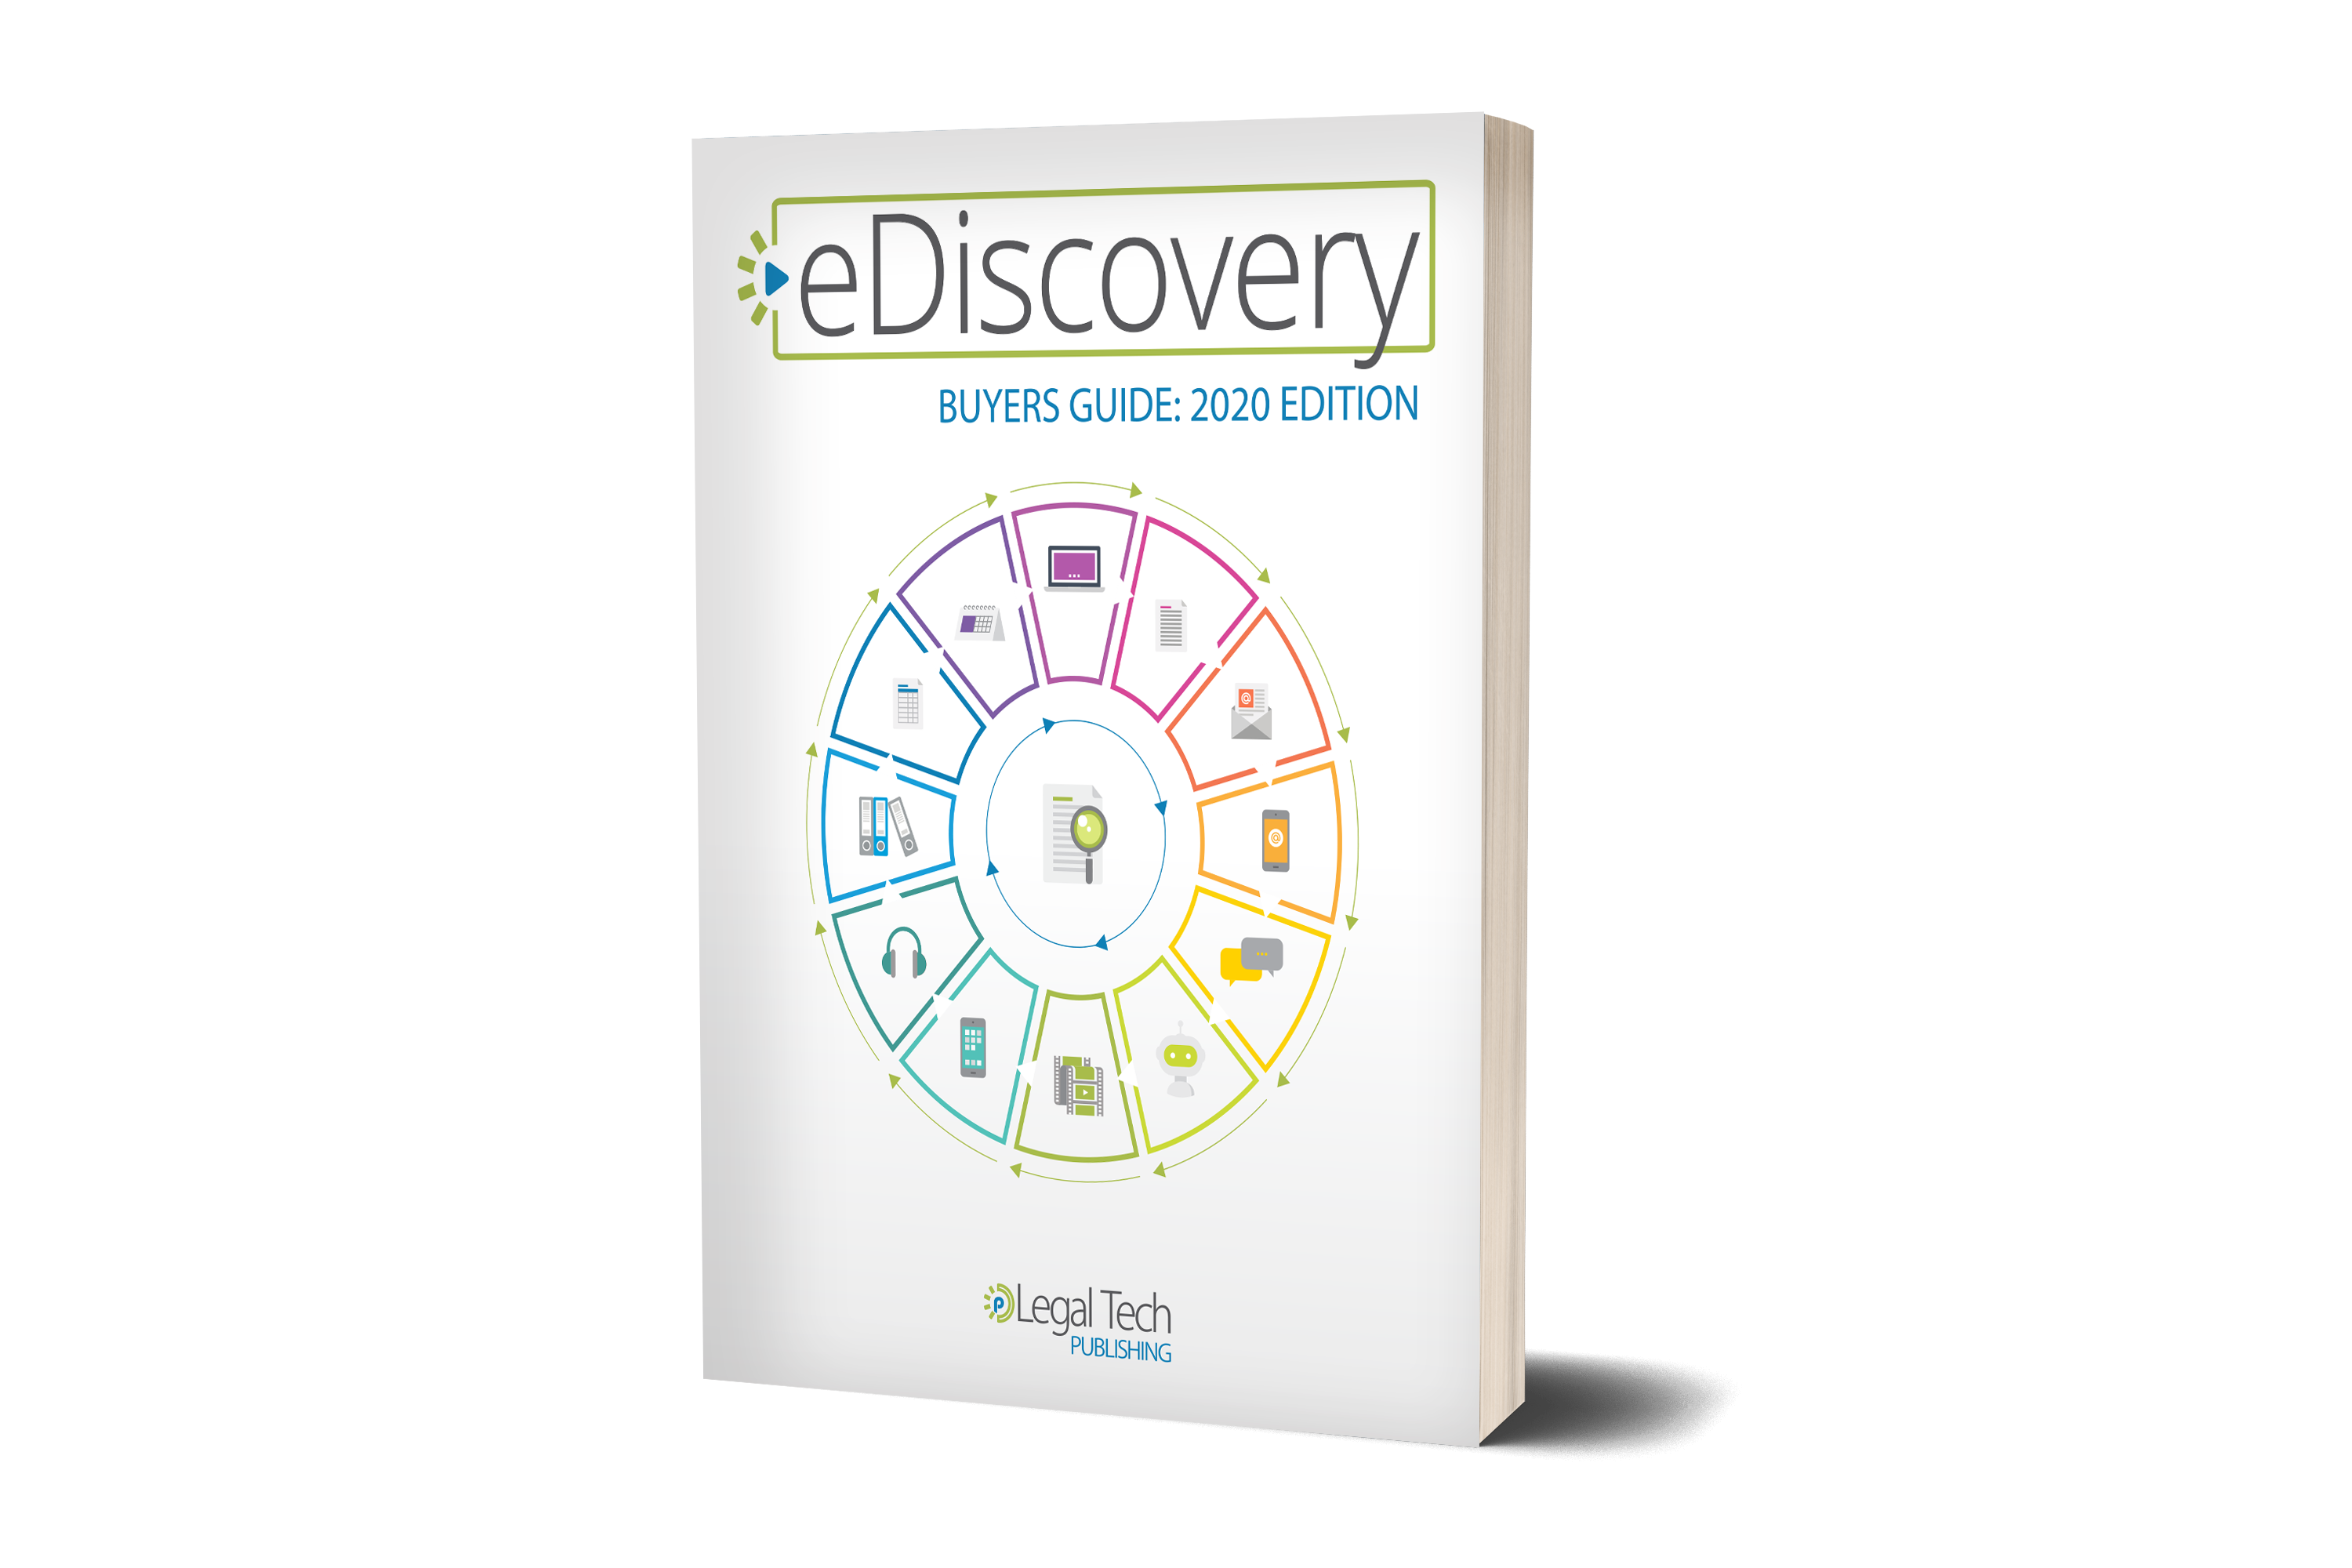 eDiscovery-Buyers-Guide-2020-Cover-Standing